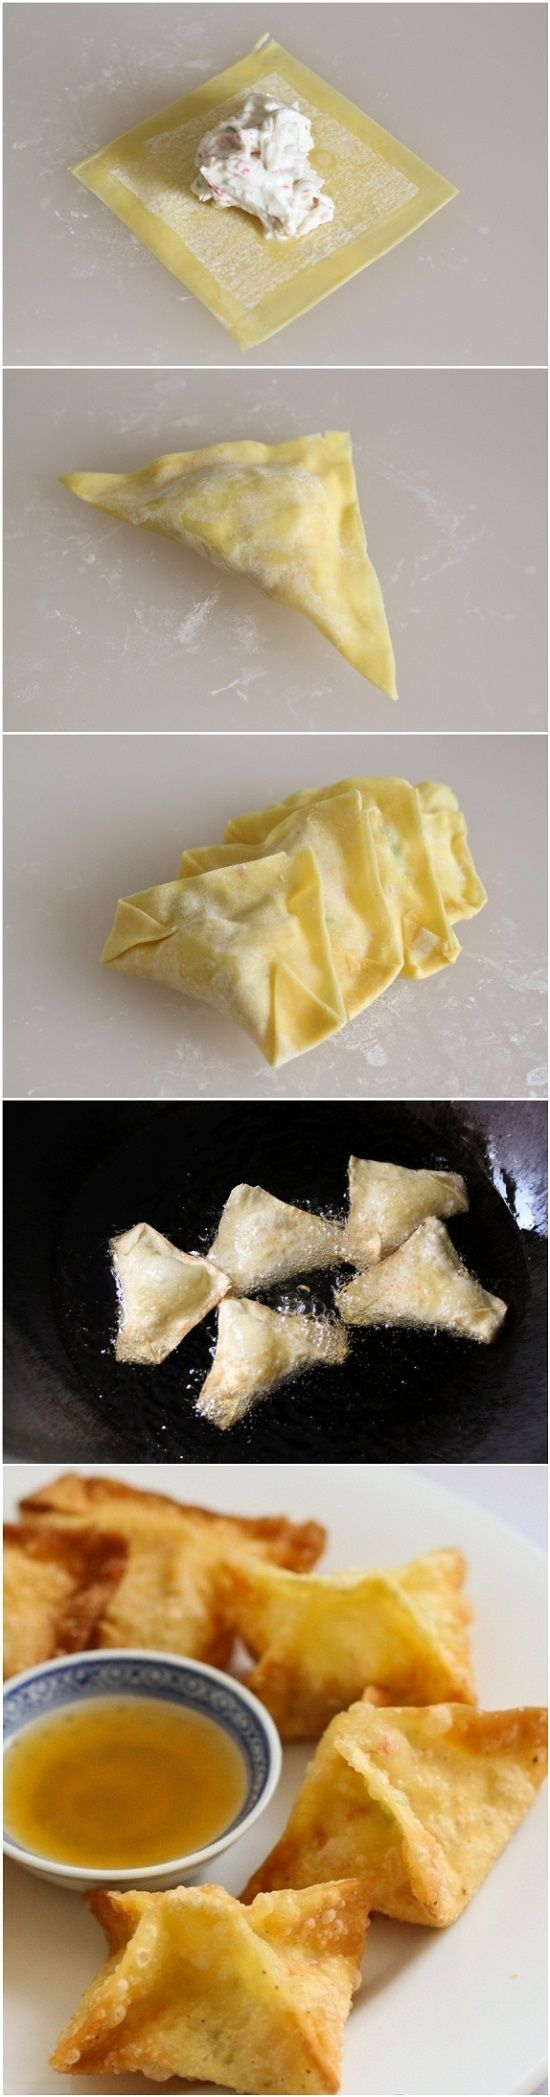 ♨ Crab Rangoon (Cheese Wonton)